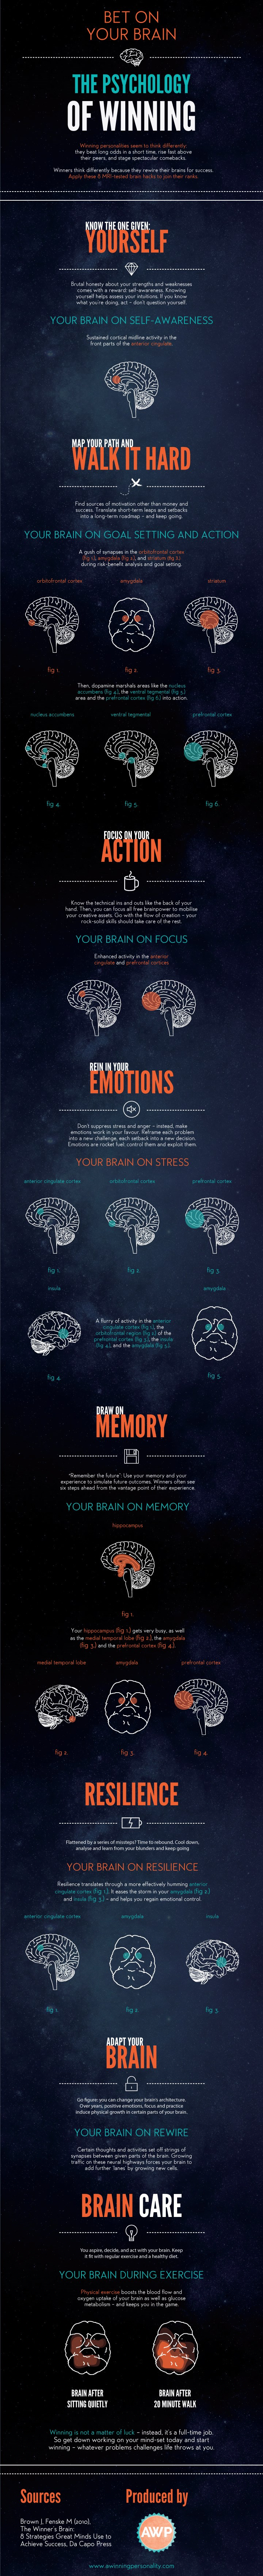 03  Bet-on-your-Brain-The-Psychology-of-Winning-Smaller-